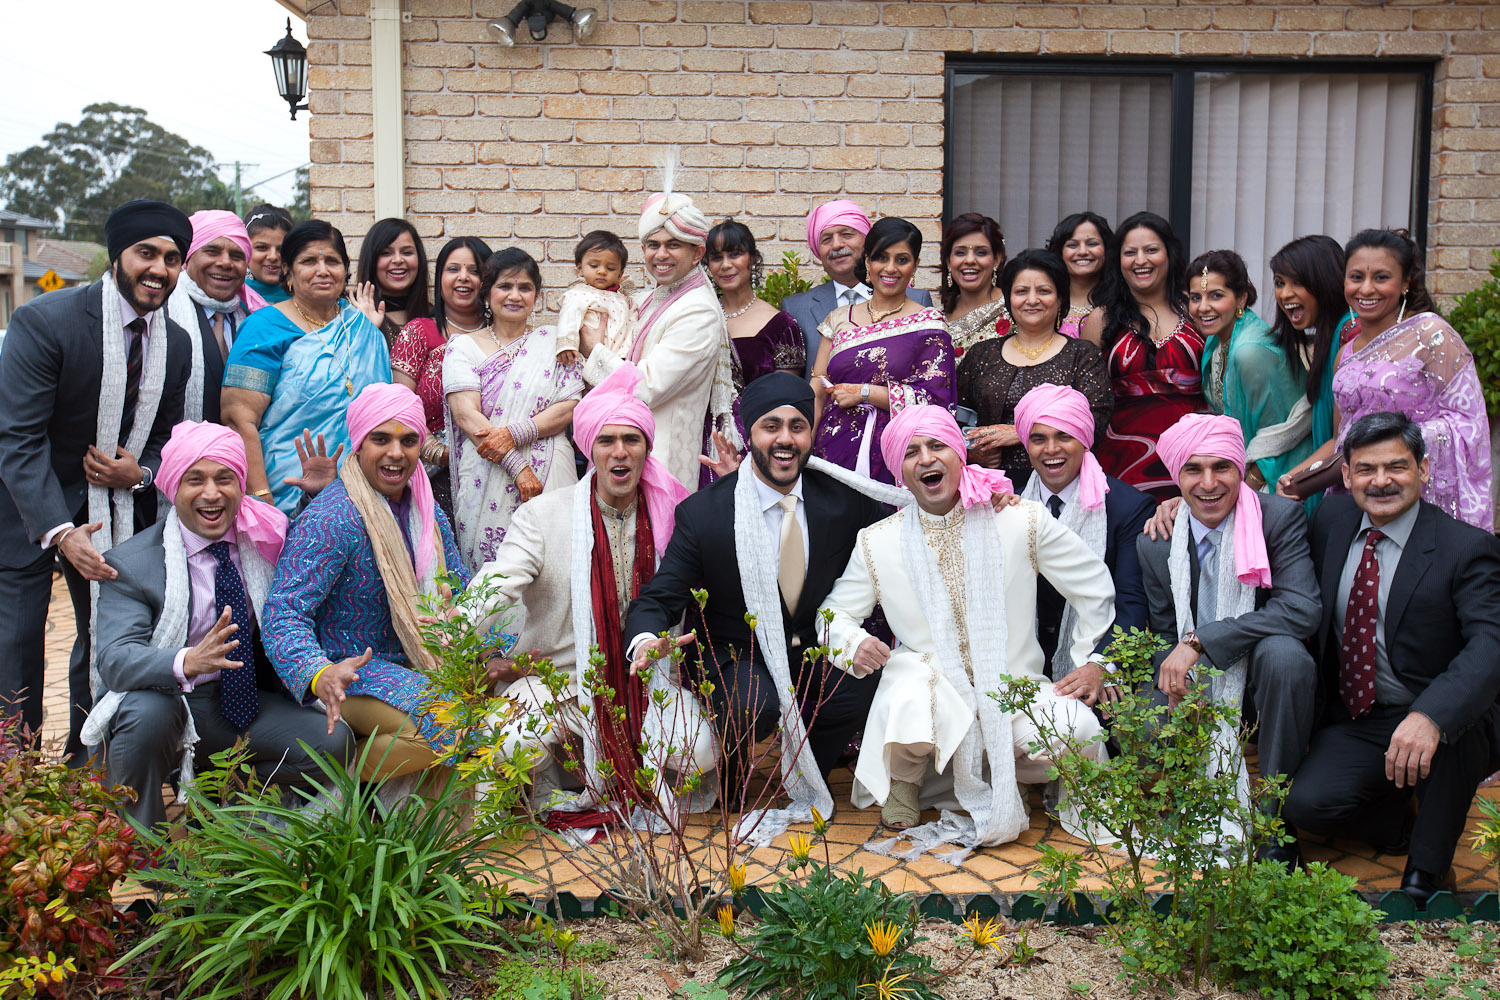 ANNAWARR-WEDDINGS-014